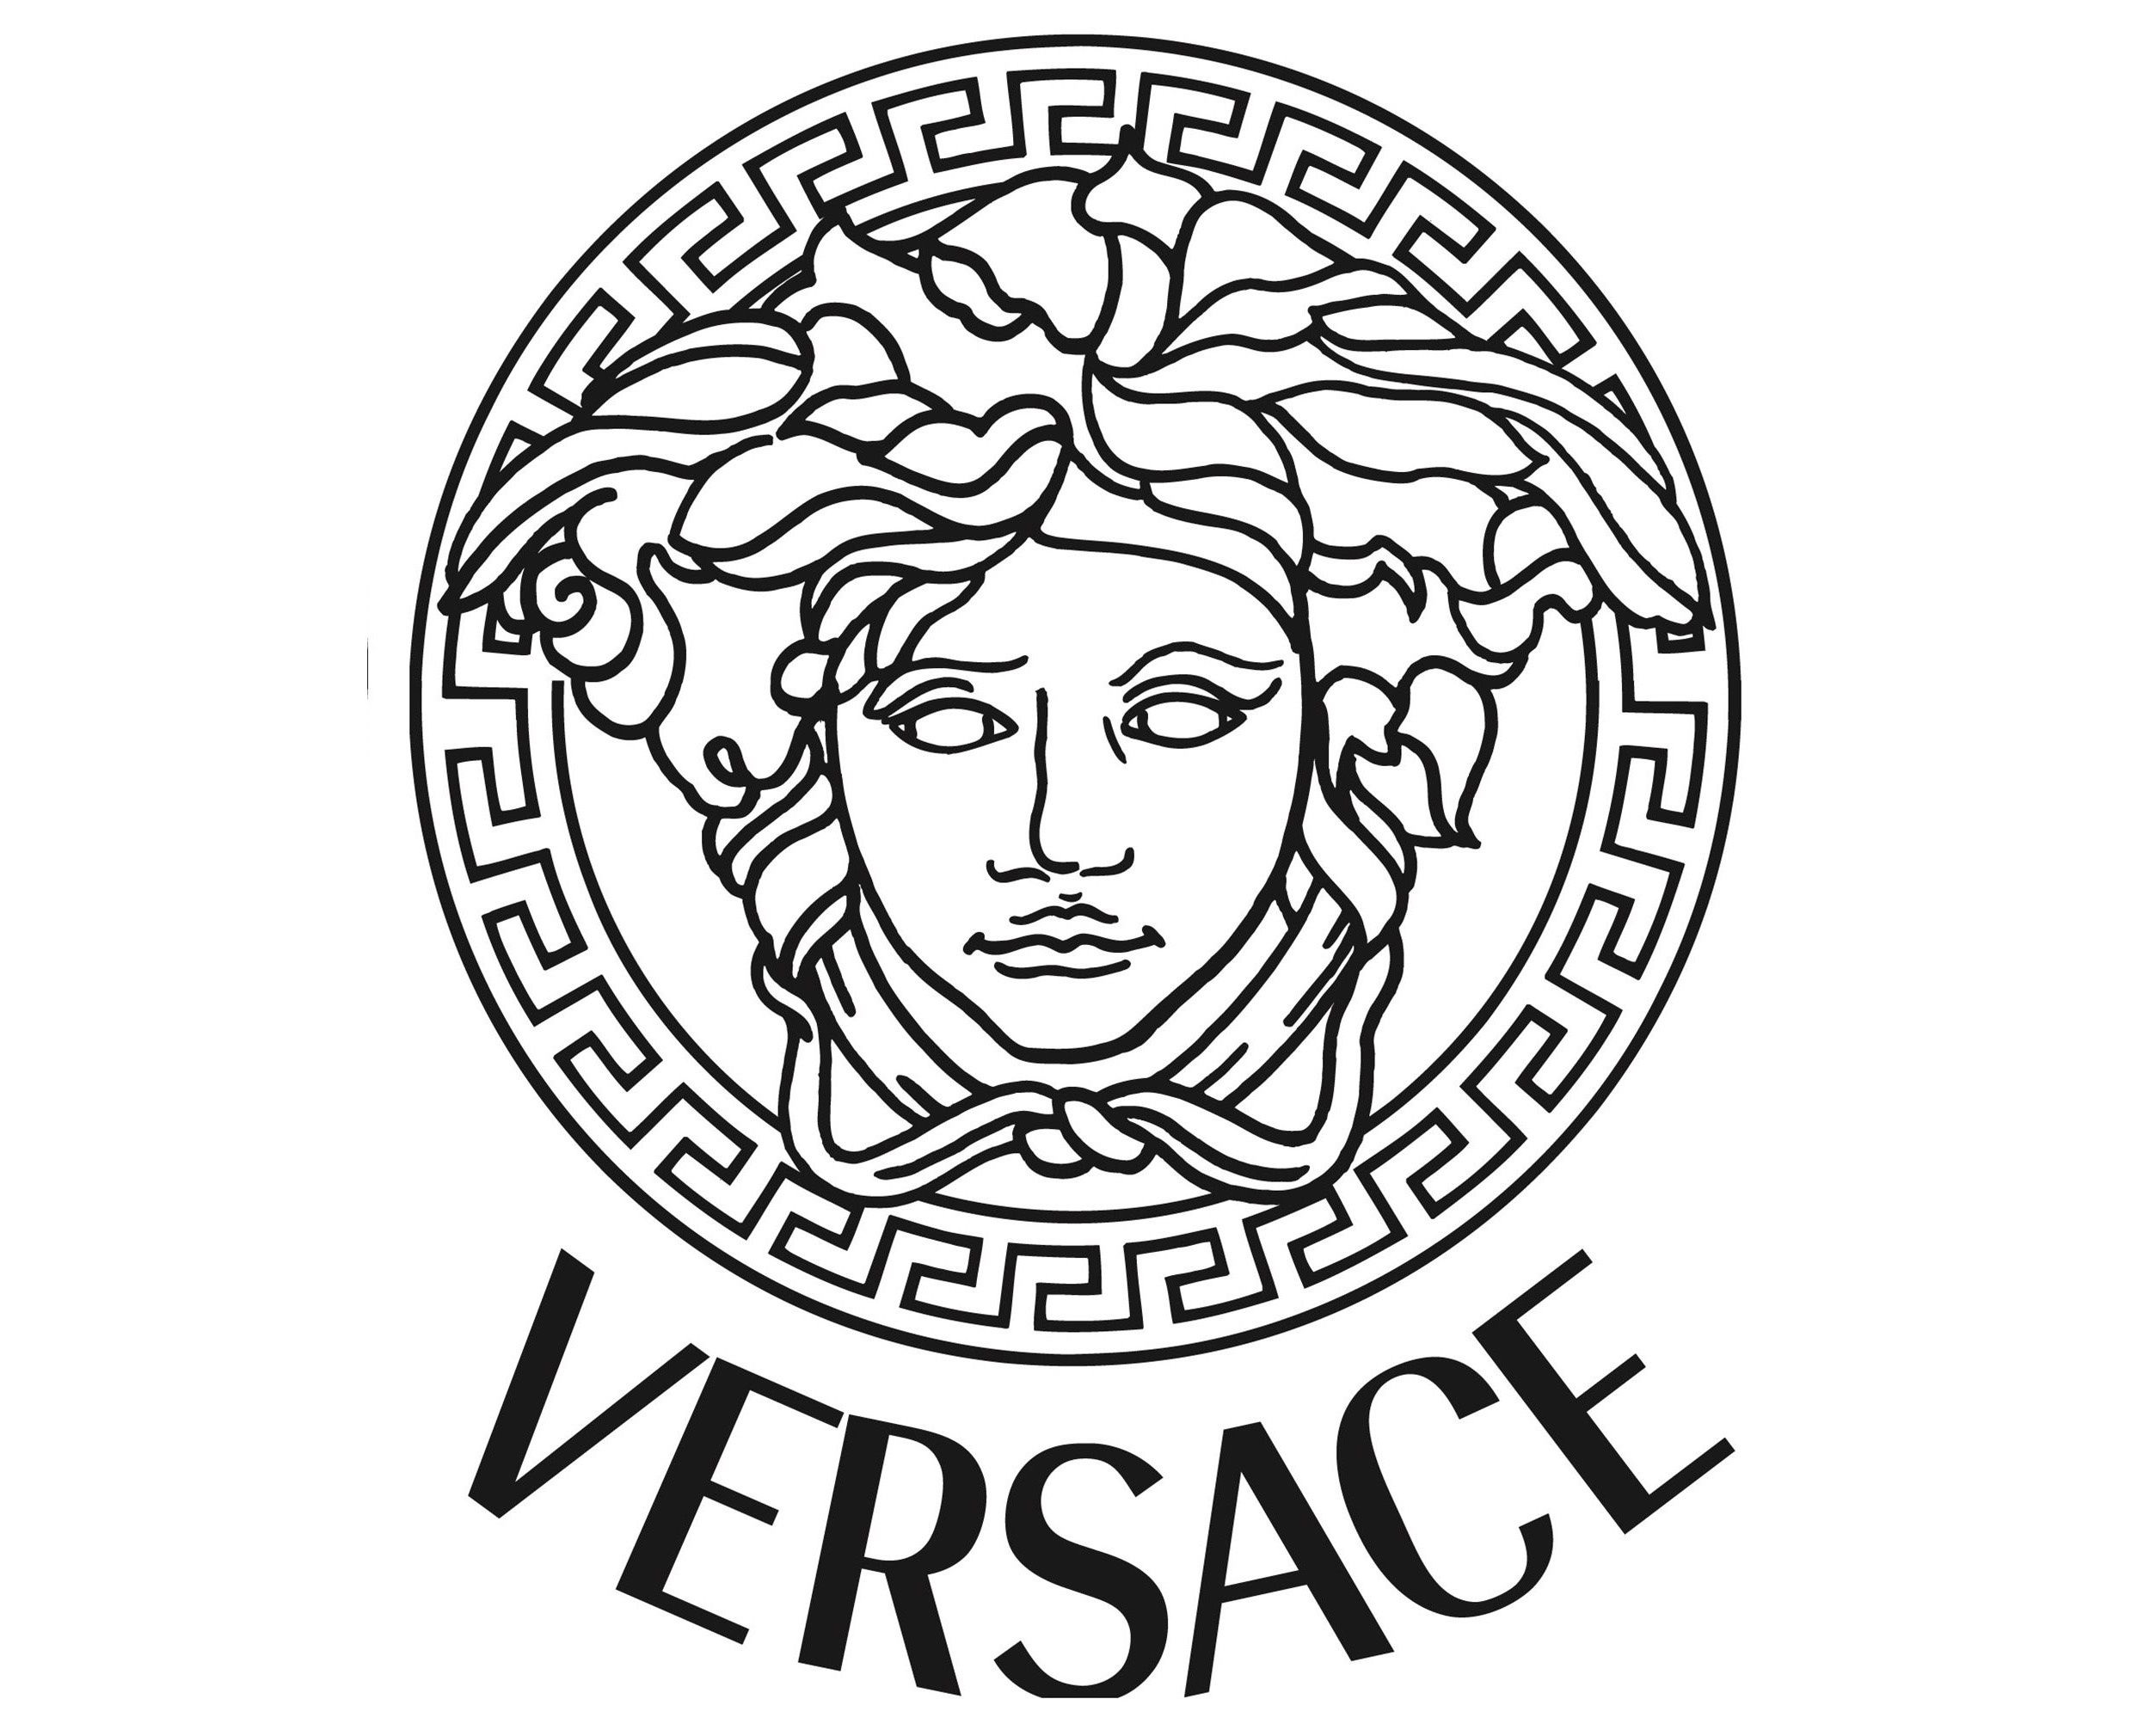 Versace Logo - What does the Versace logo mean? Who designed it? - Quora